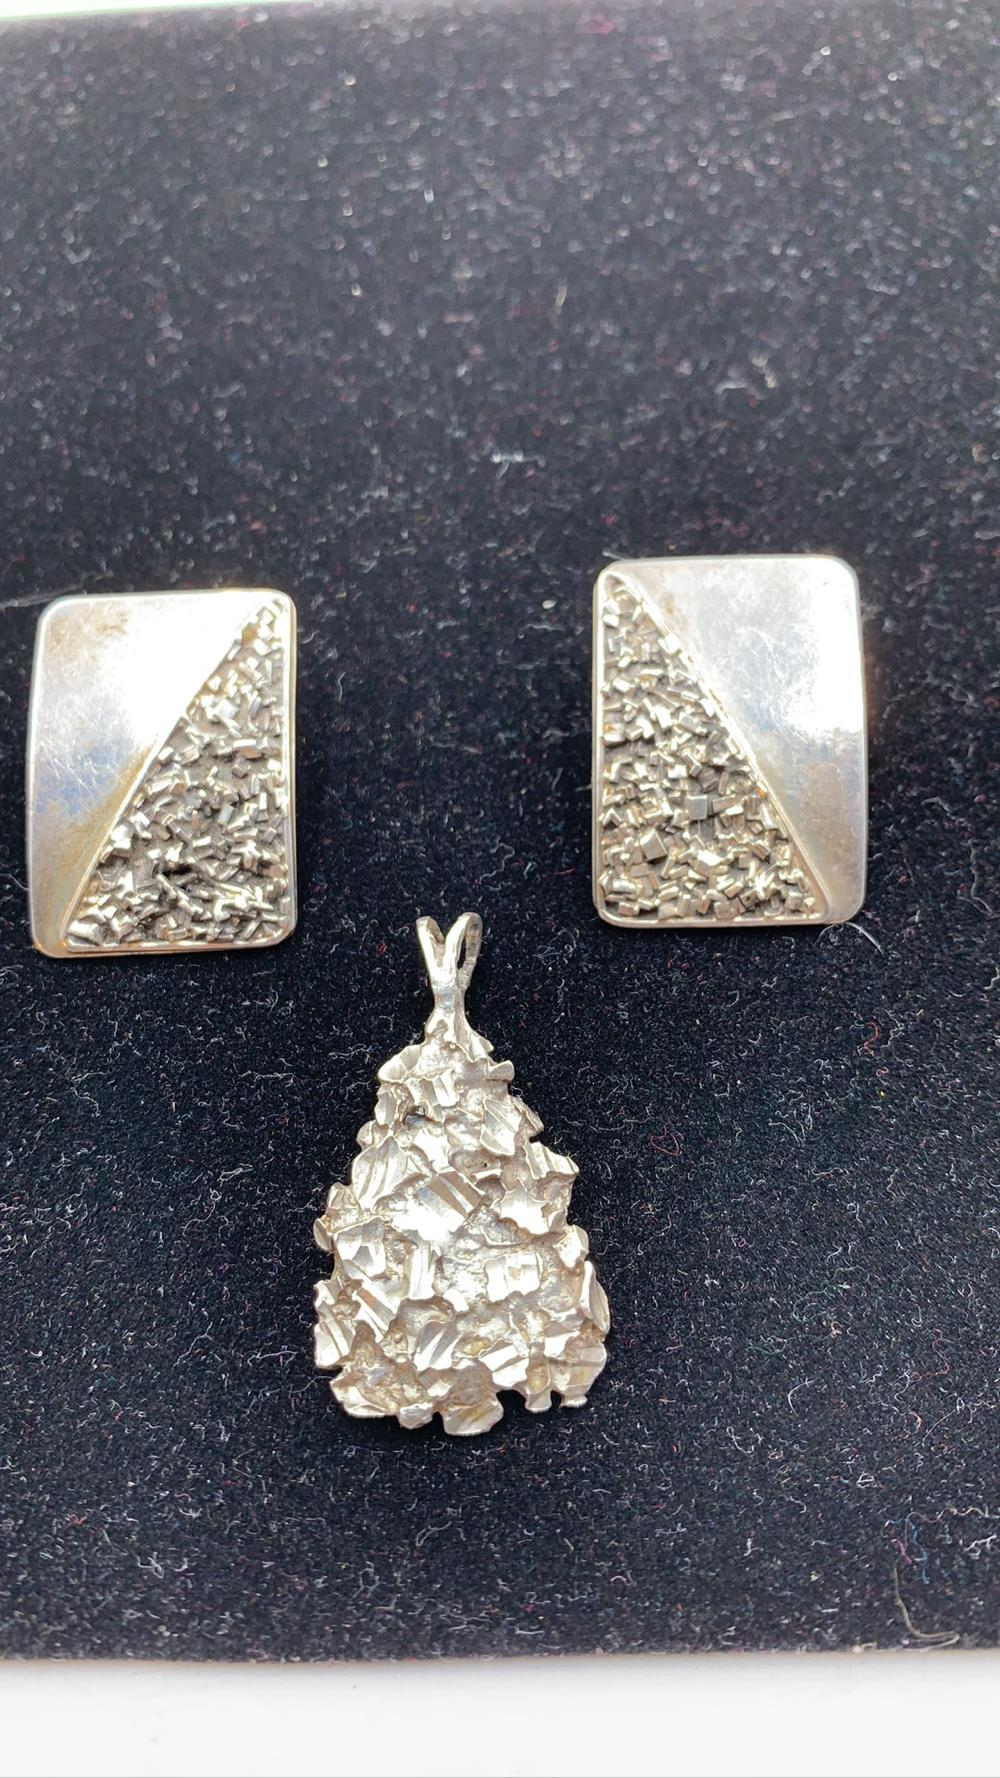 Taxco .925 Silver Set of Earrings & Pendent